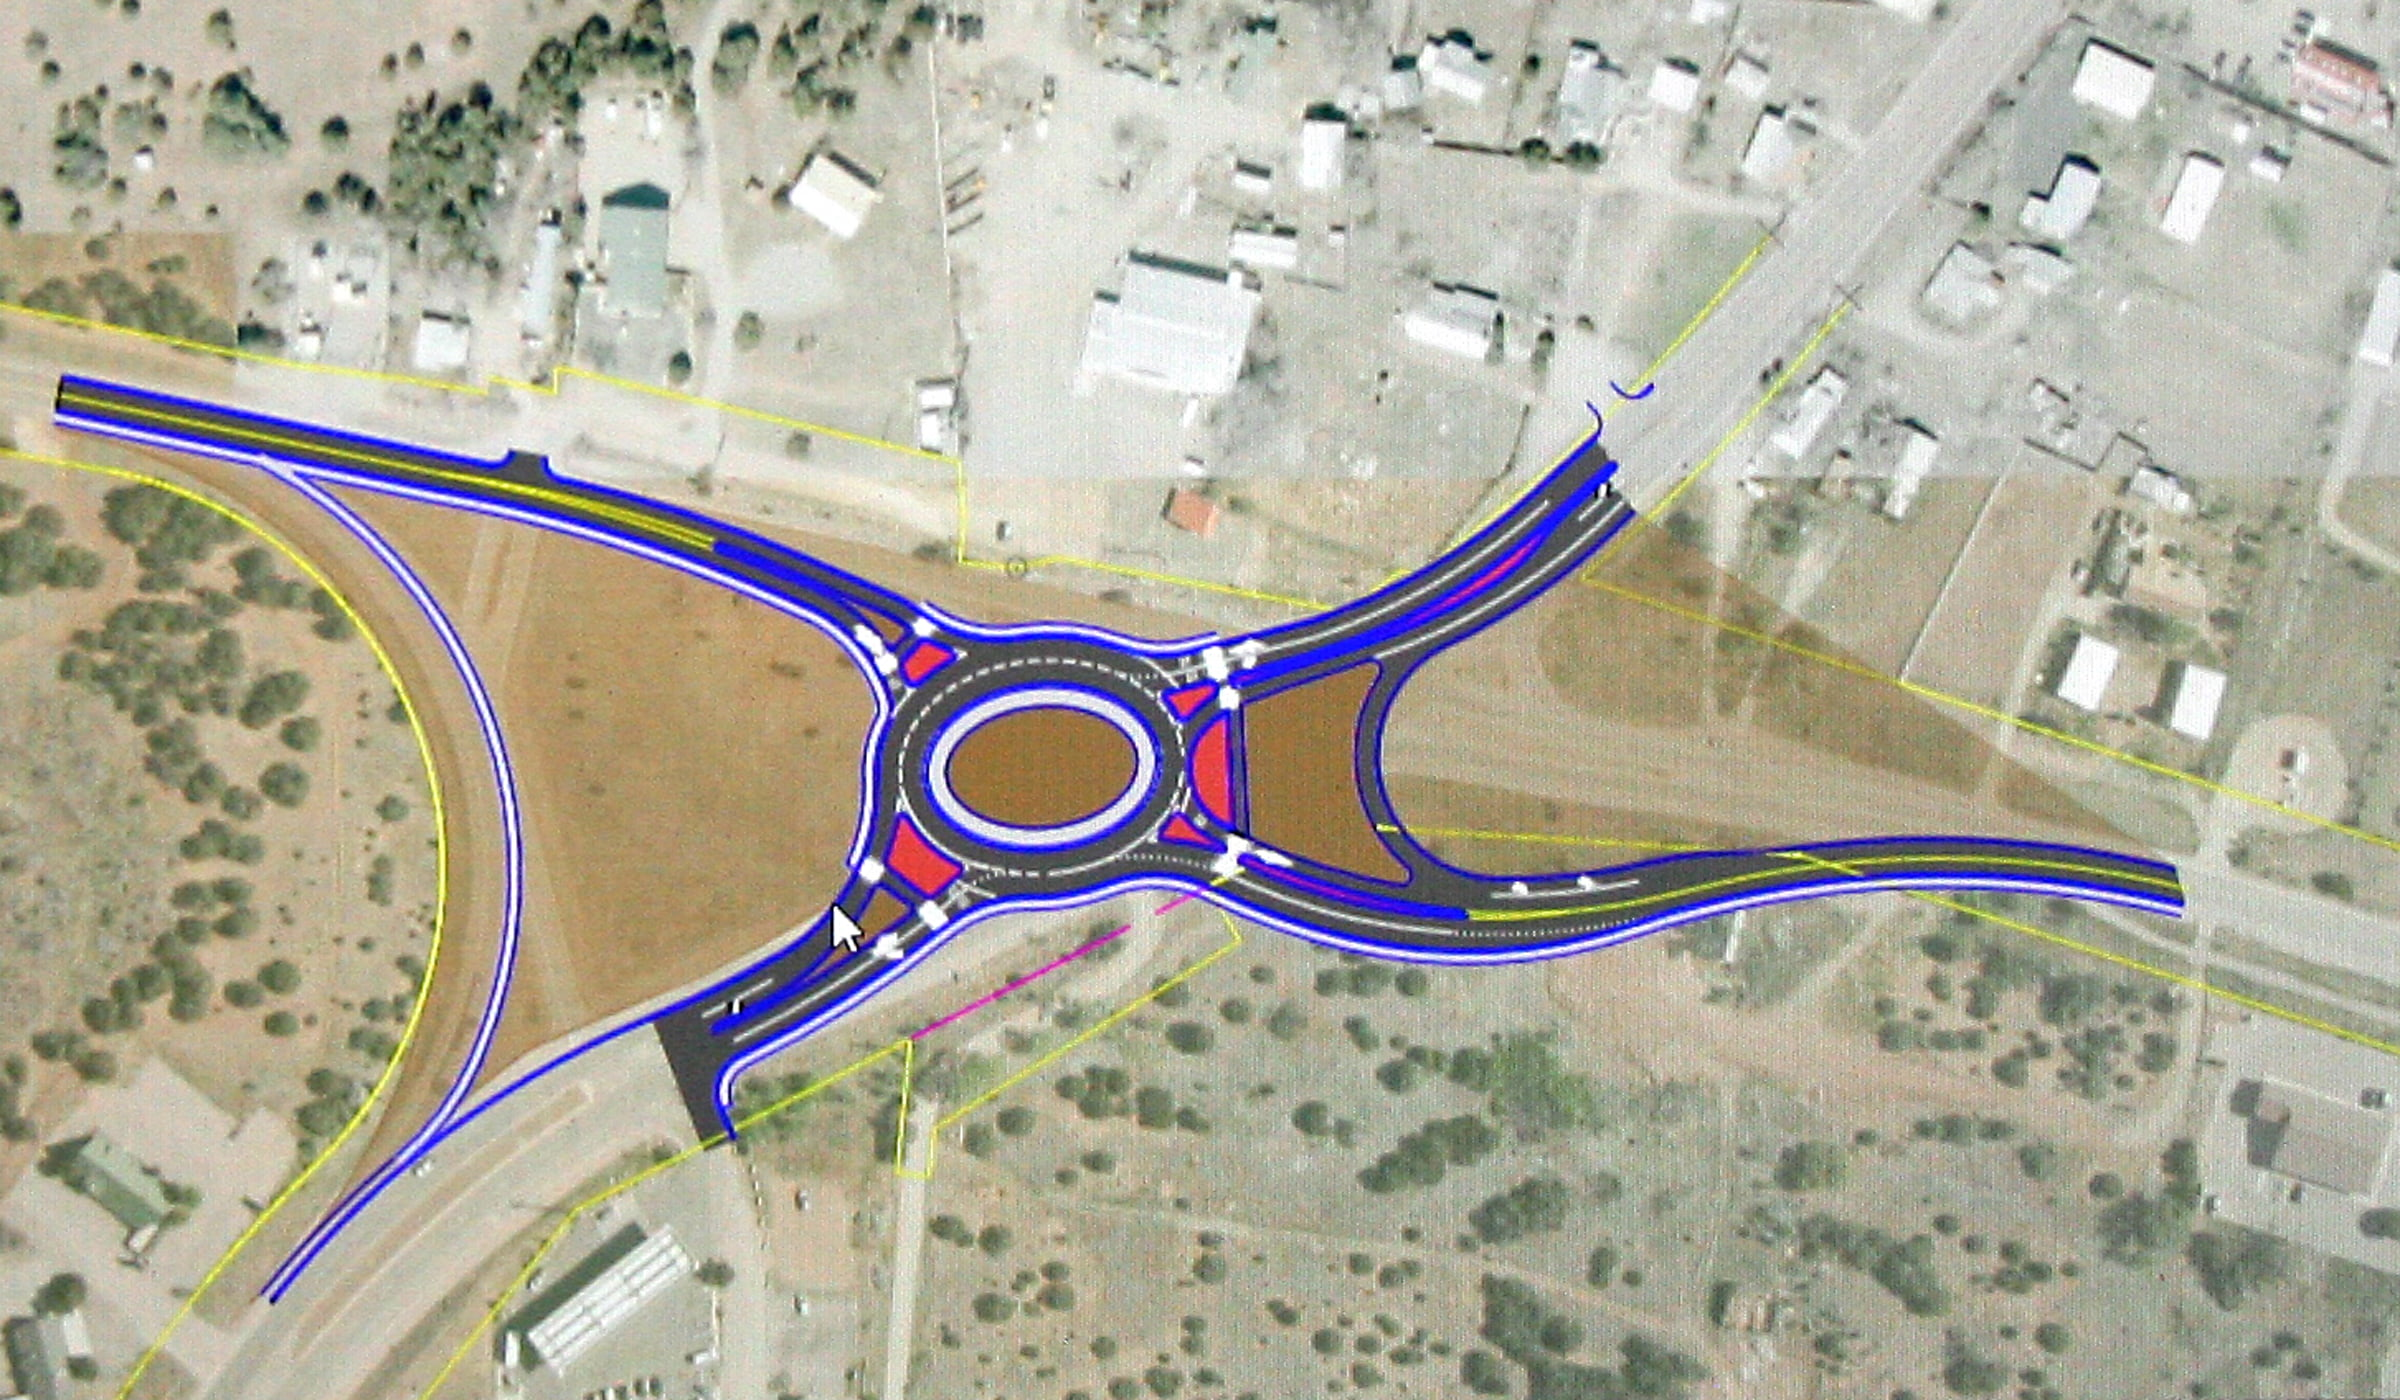 N14: More paving, roundabout (someday)